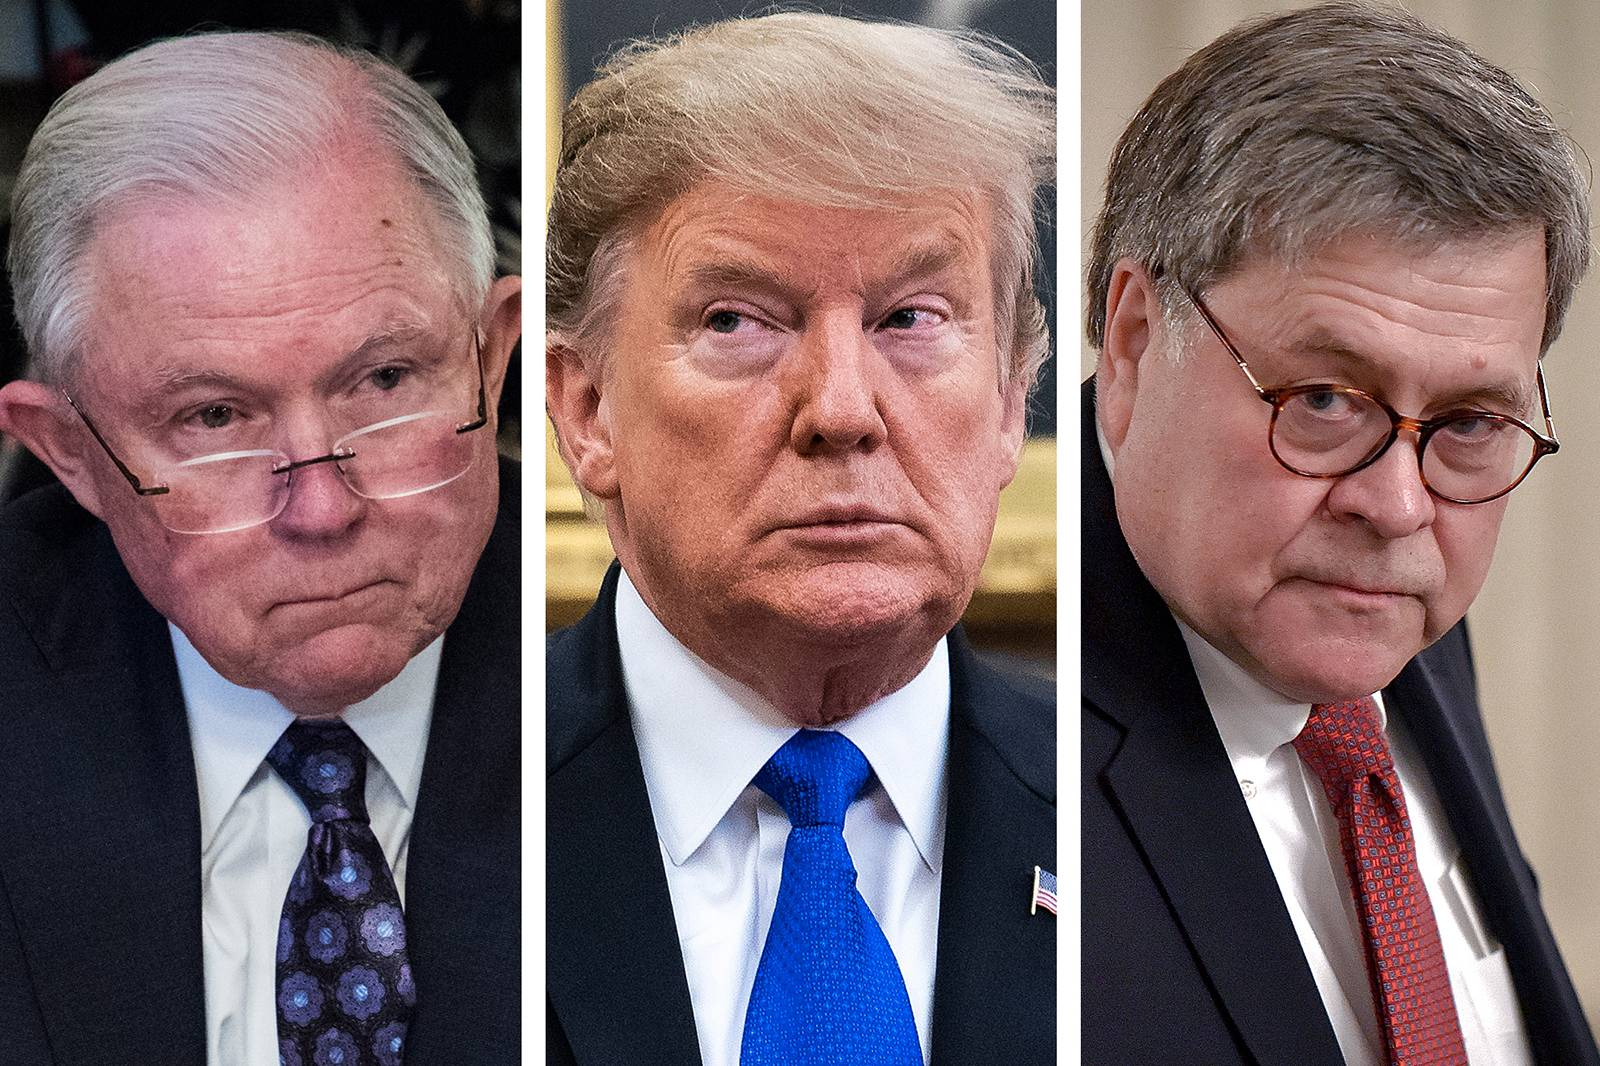 Former Attorney General Jeff Sessions, left, returned to the Justice Department on Thursday for an event in which he was presented with his old Cabinet chair. President Donald Trump replaced Sessions with William Barr, right.